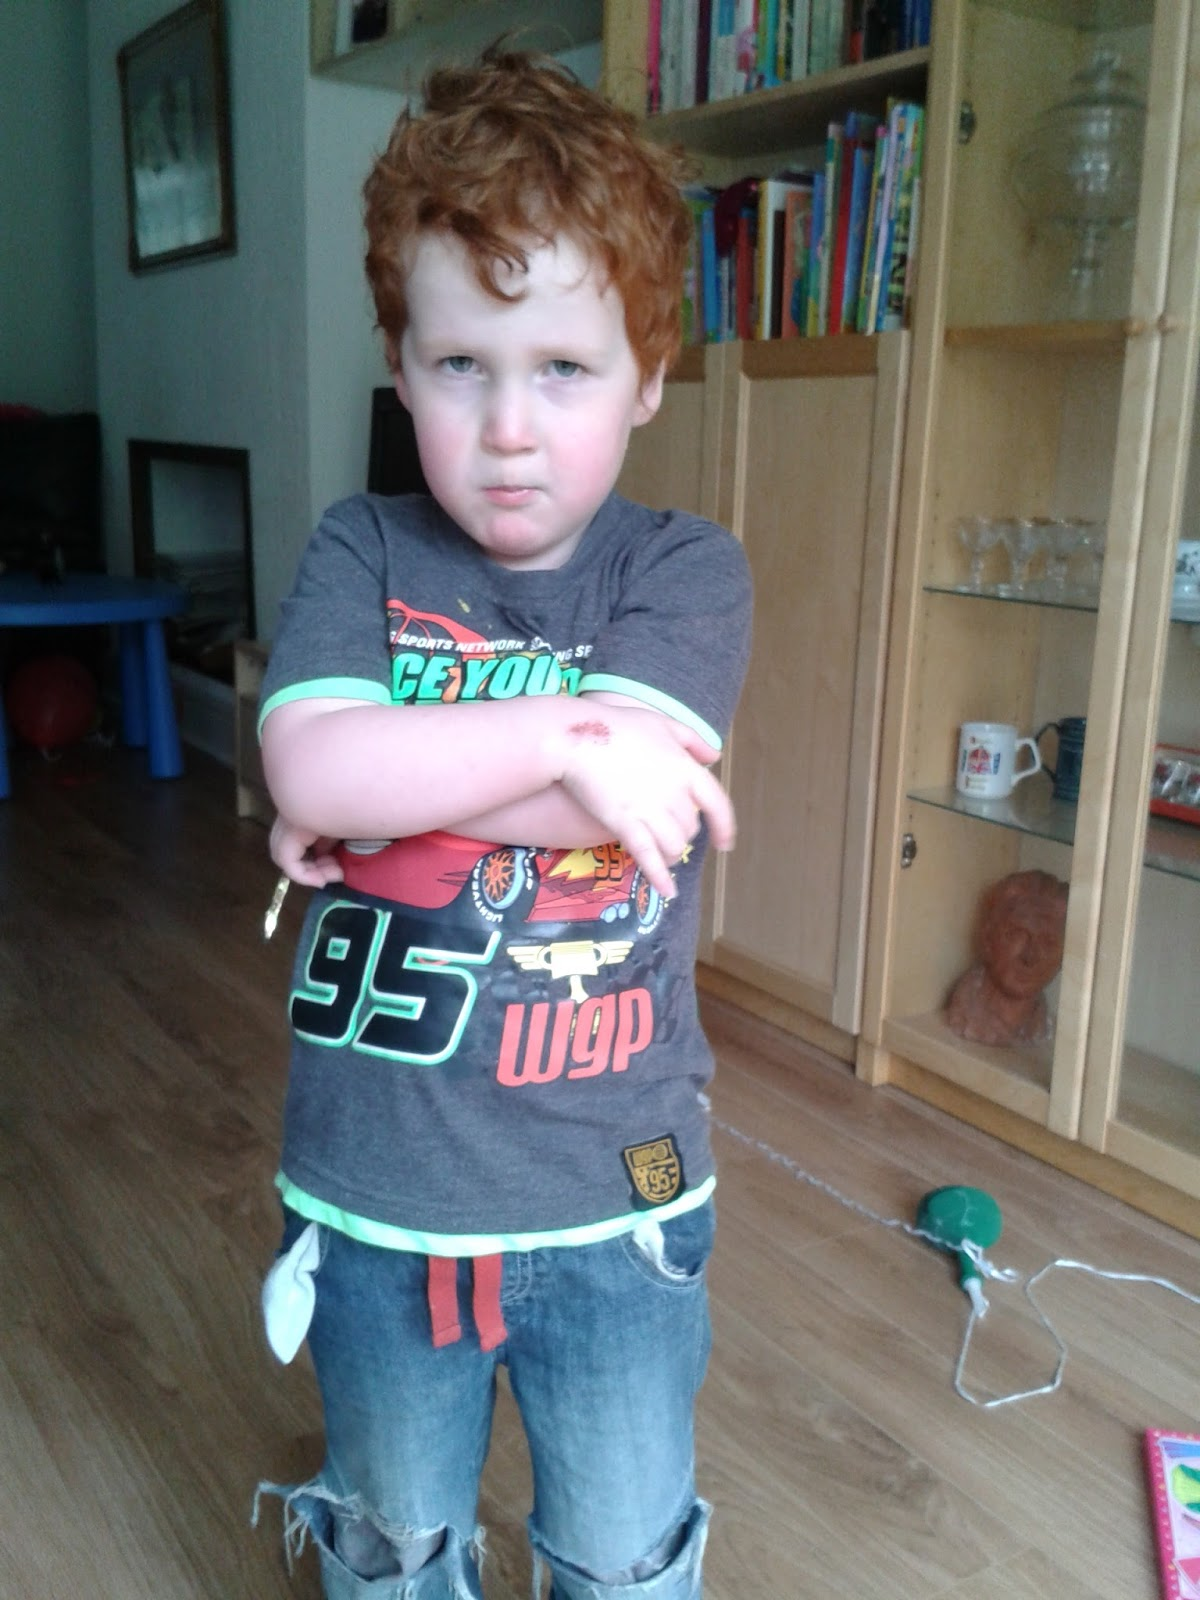 disciplining boys - Ieuan in his defiant pose